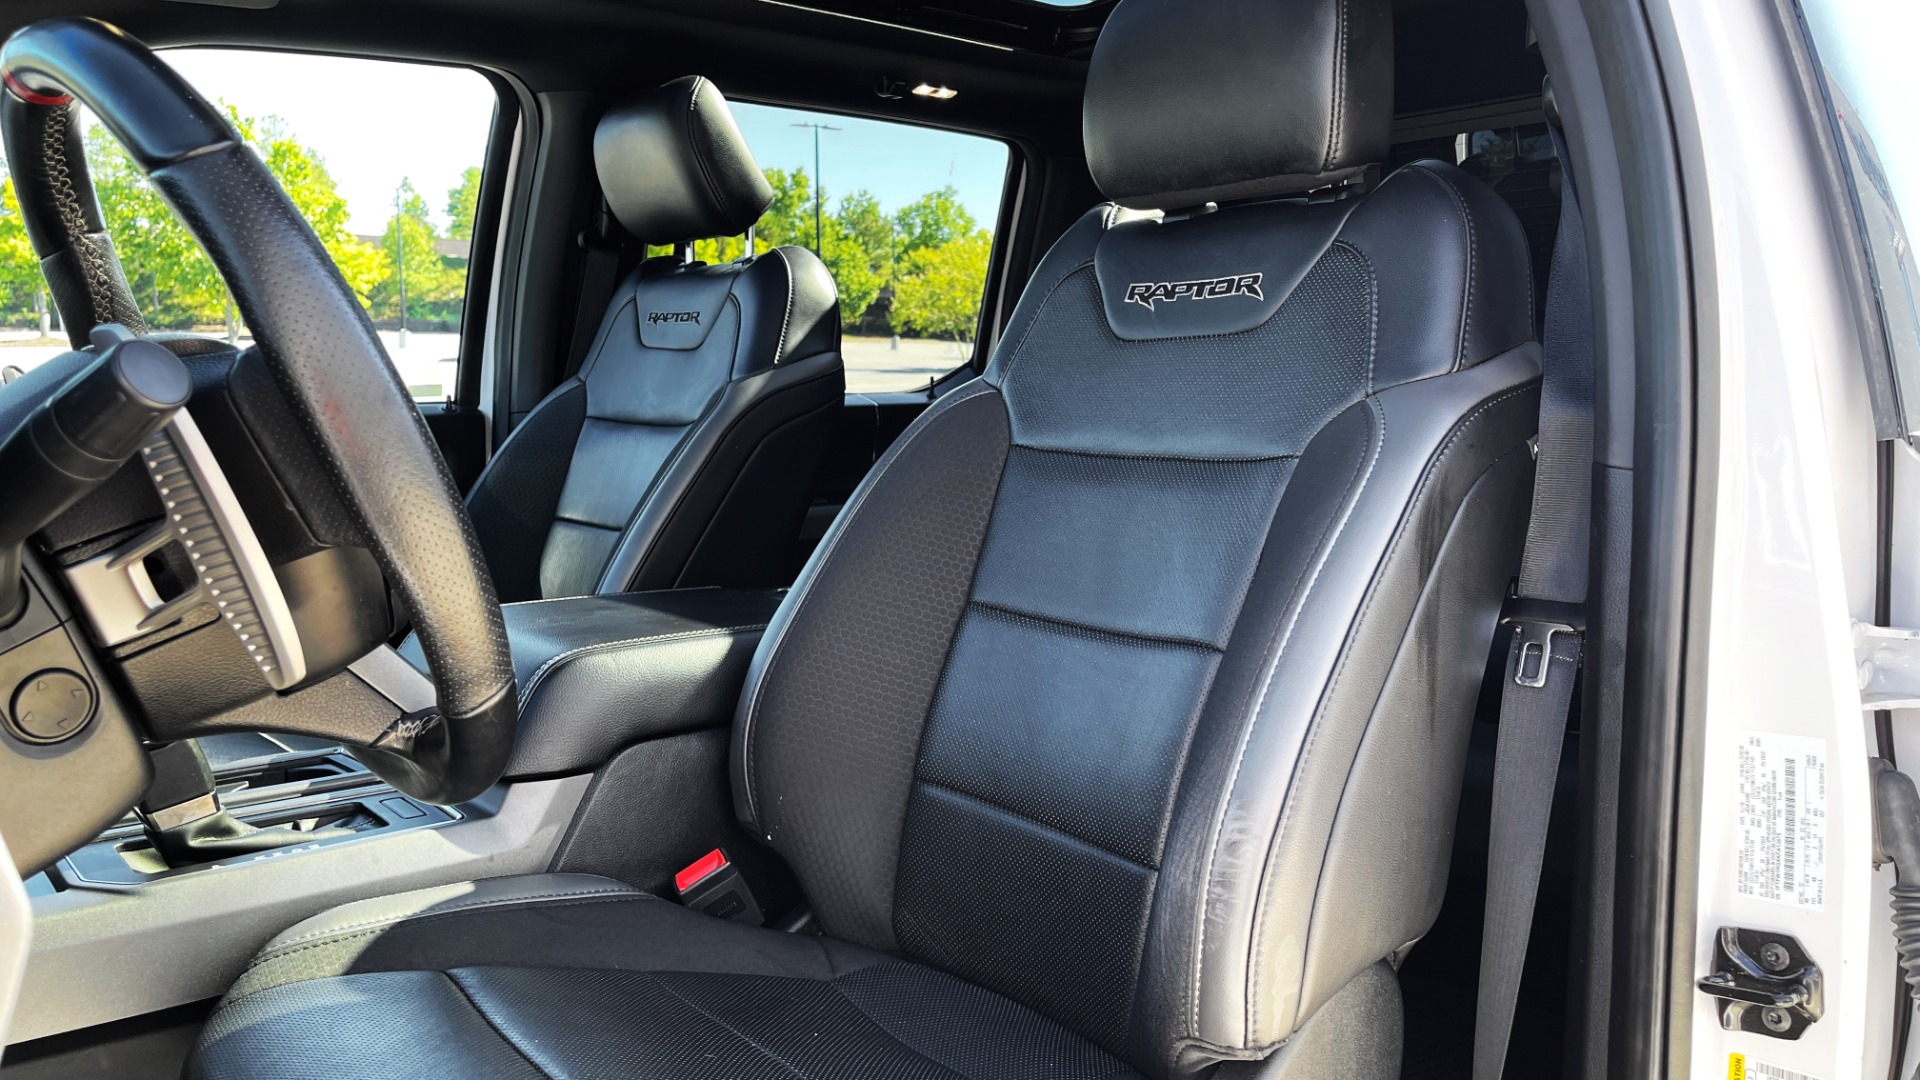 Used 2019 Ford F-150 RAPTOR 4X4 SUPERCREW / NAV / BLIS / B&O SND / REMOTE START / REARVIEW for sale $65,999 at Formula Imports in Charlotte NC 28227 36